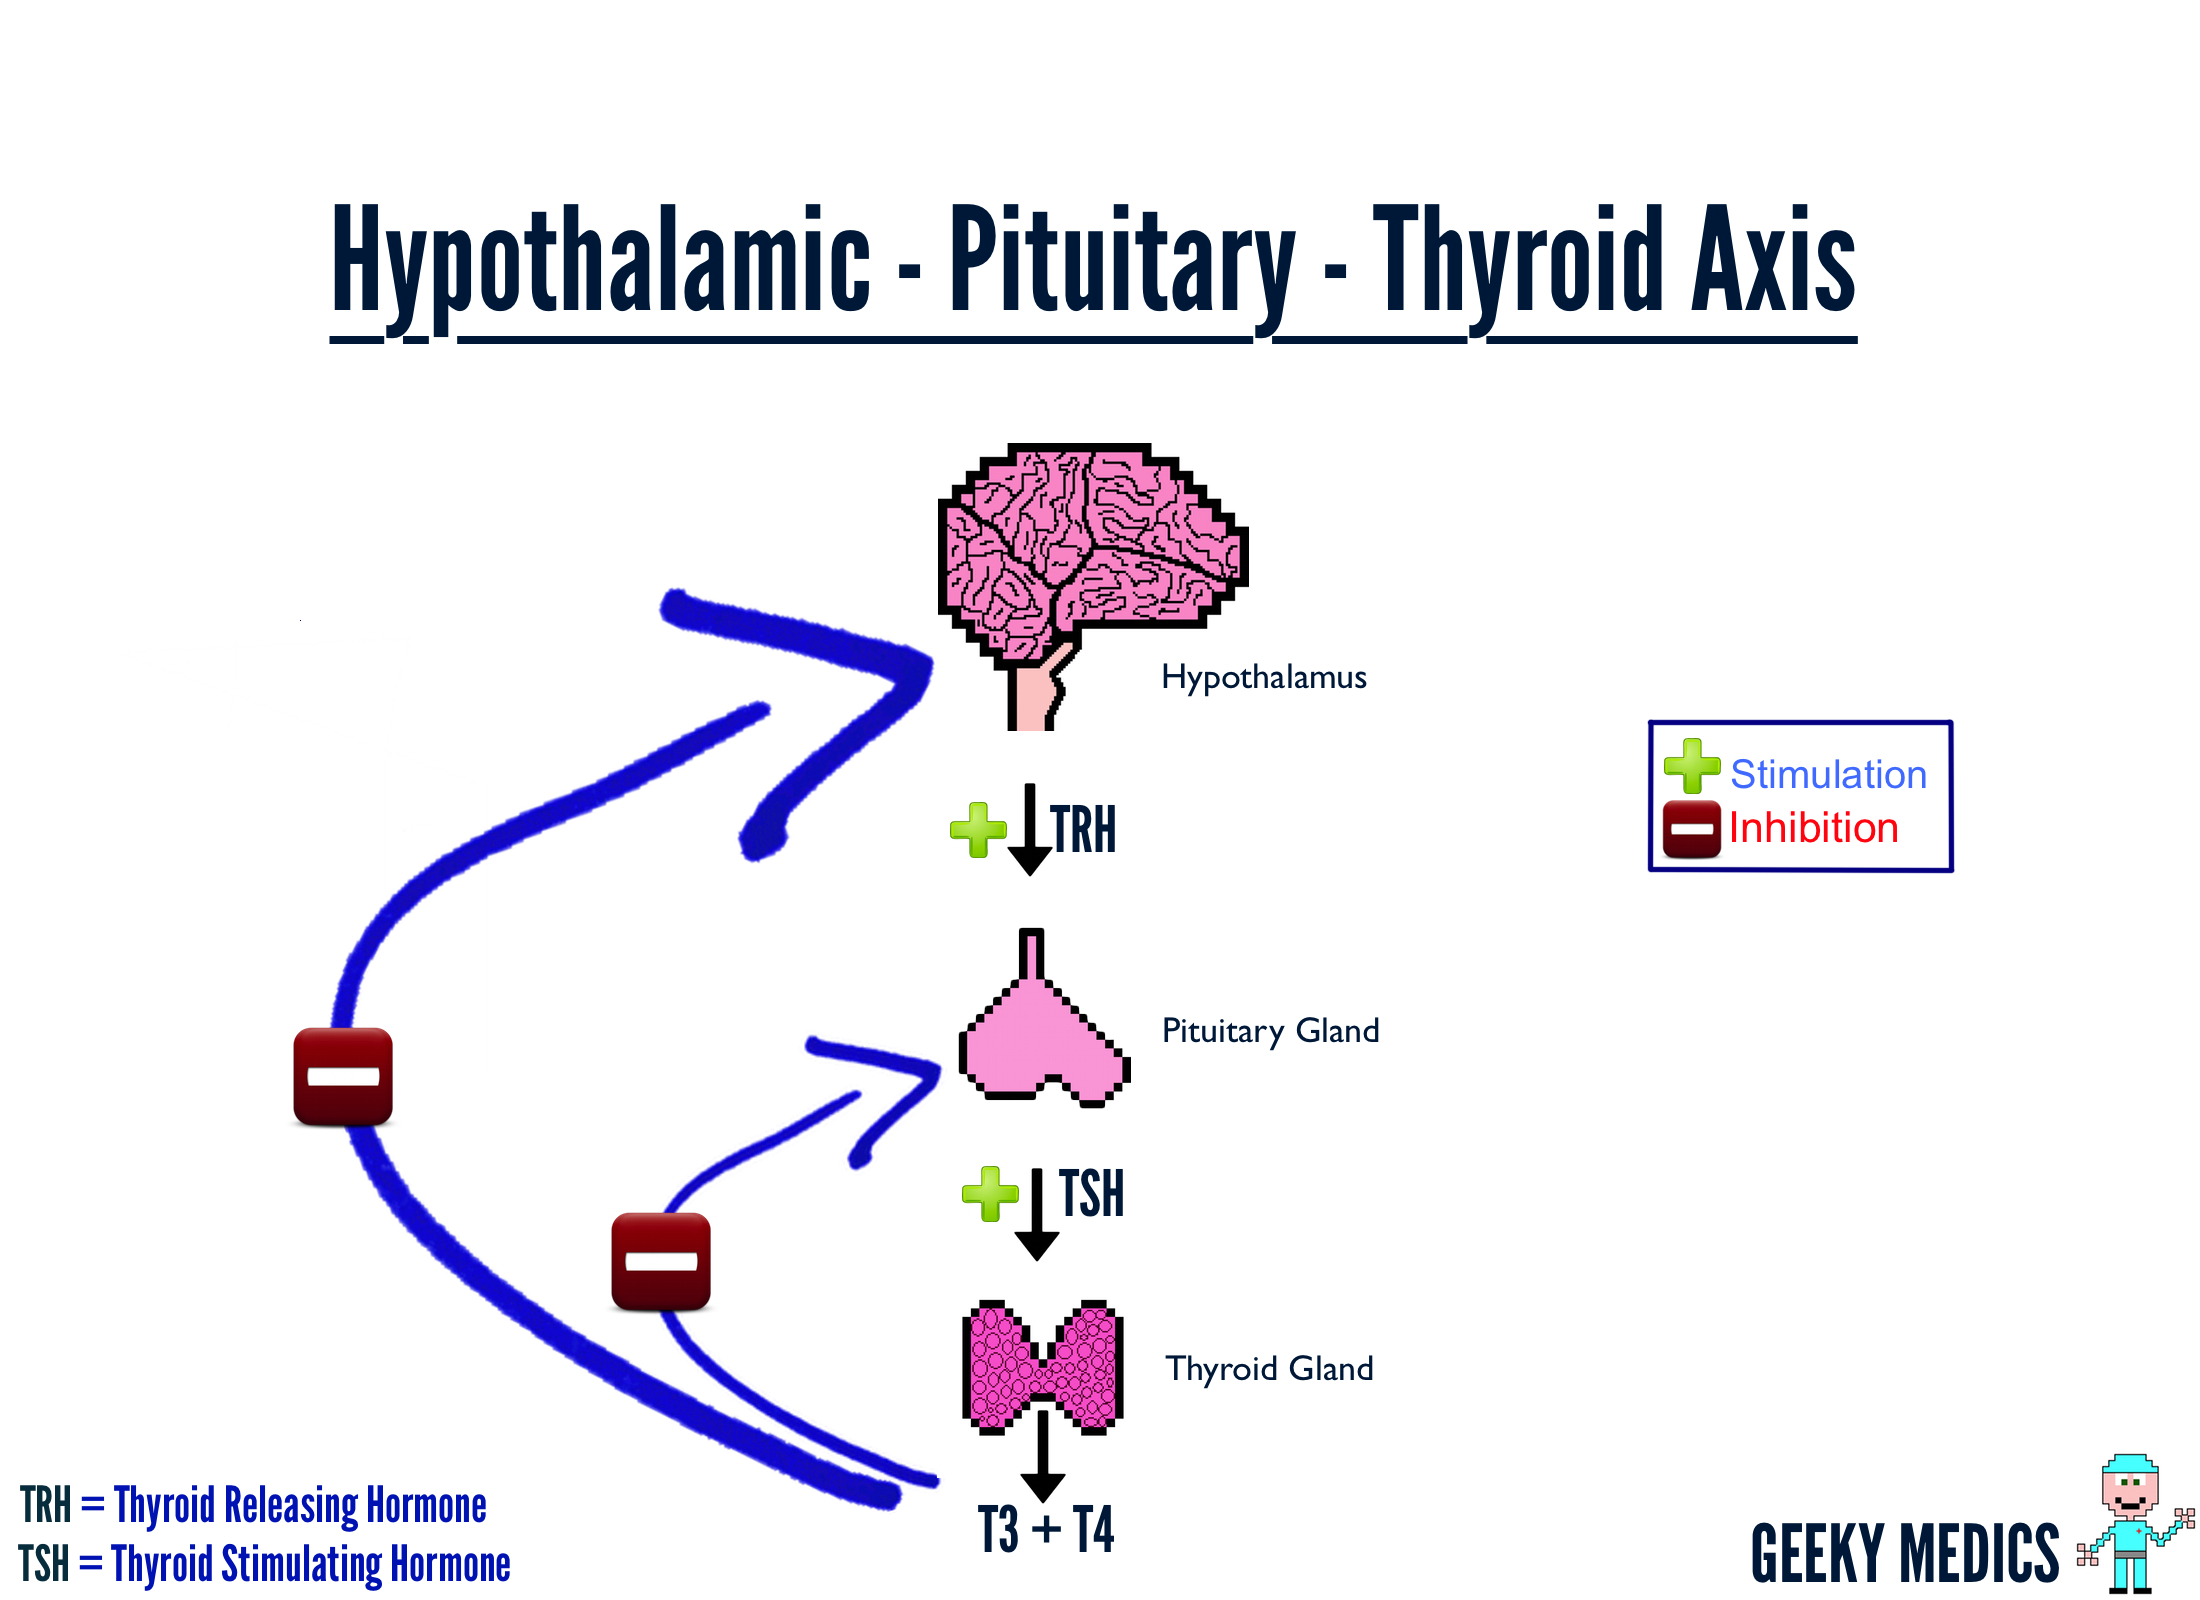 Hashimoto   s thyroiditis is the most common cause of hypothyroidismHypothalamic Dysfunction